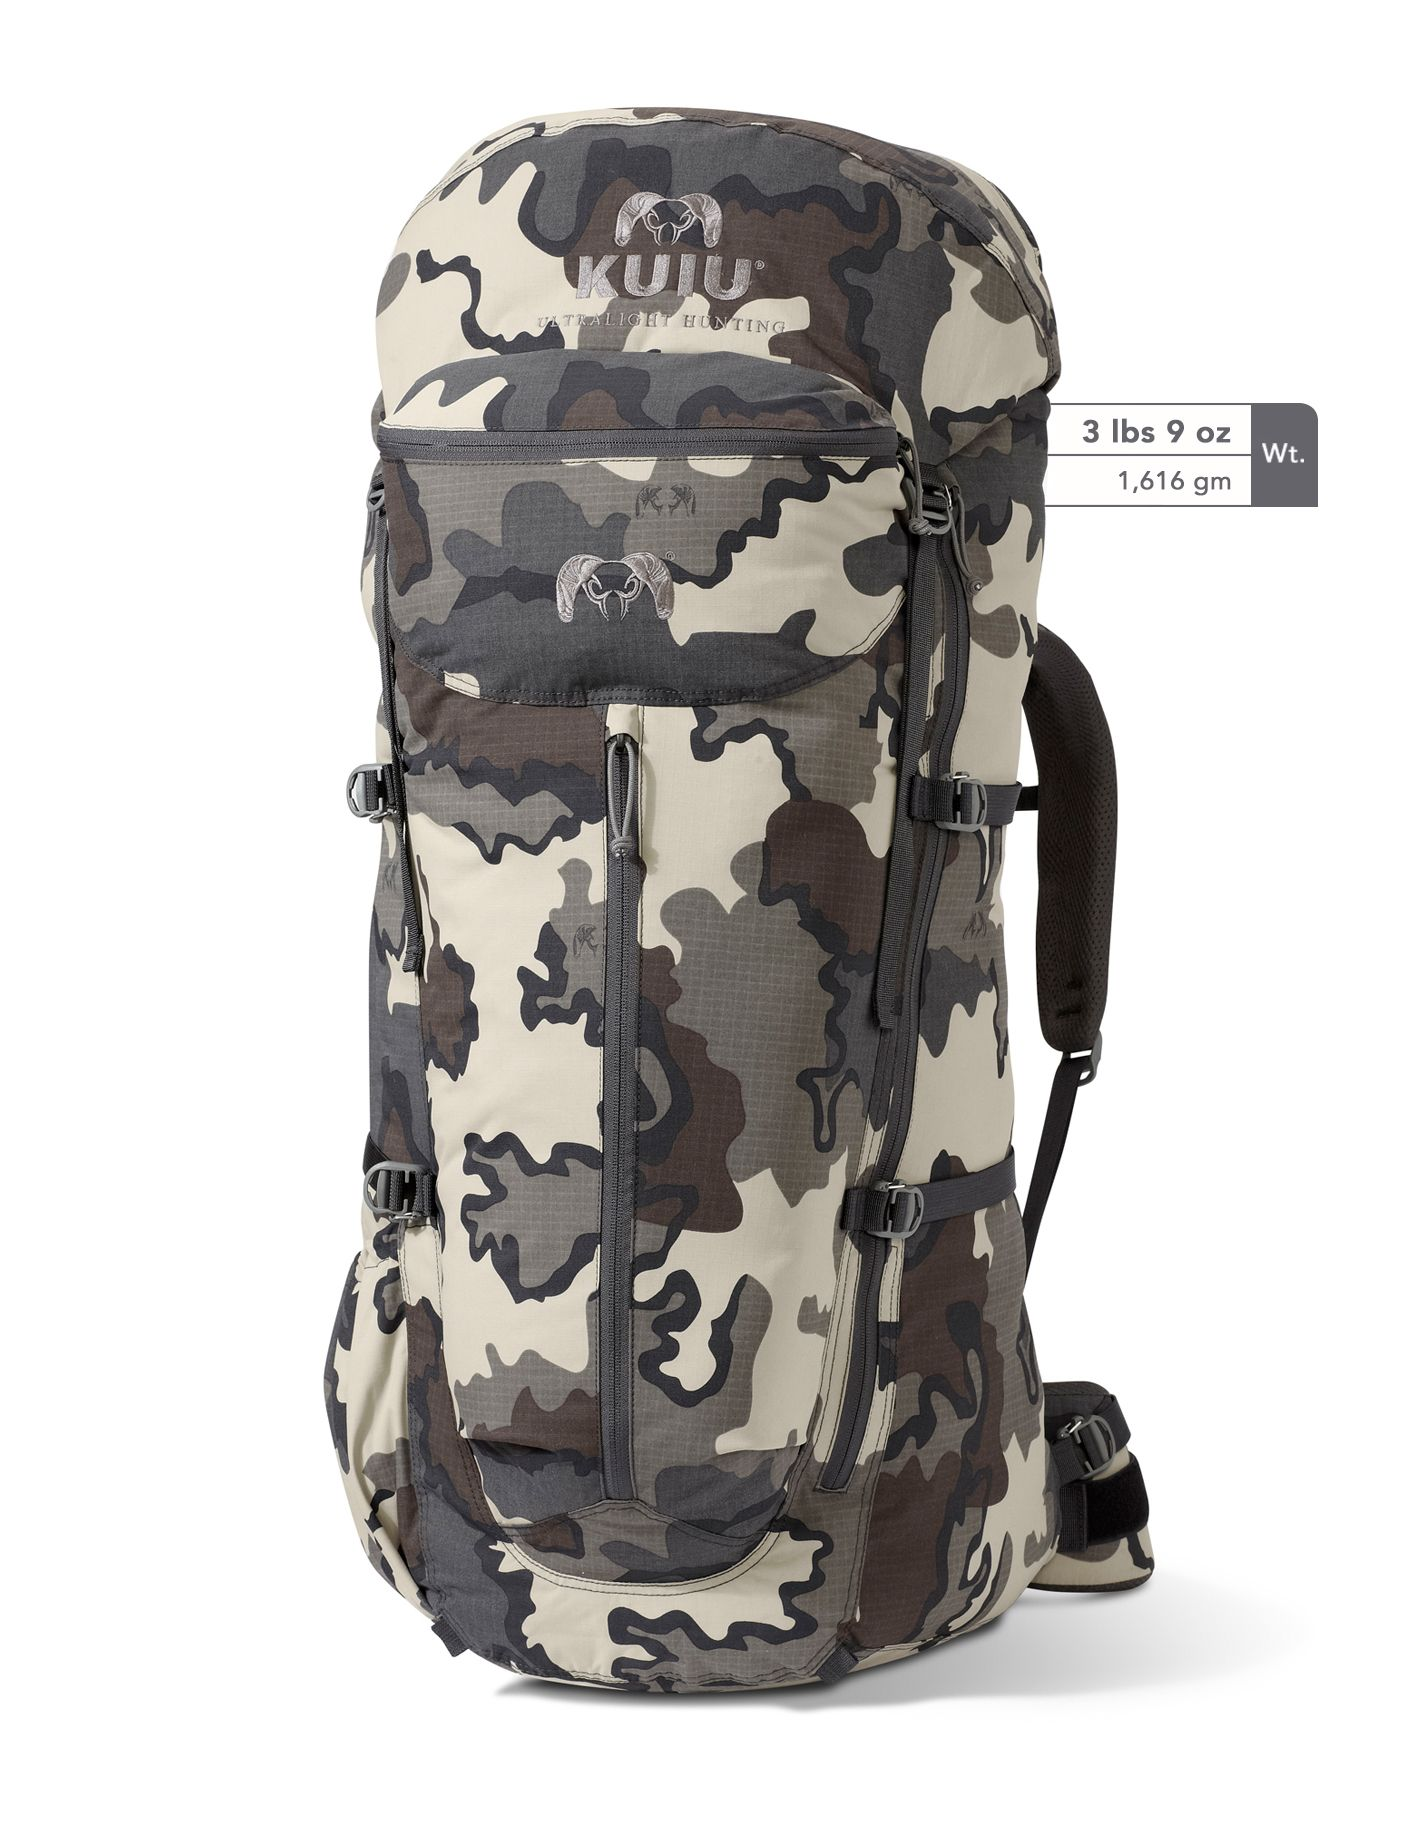 ULTRA 6000, Vias Camo | Kuiu gear | Pinterest | Hunting backpacks ...